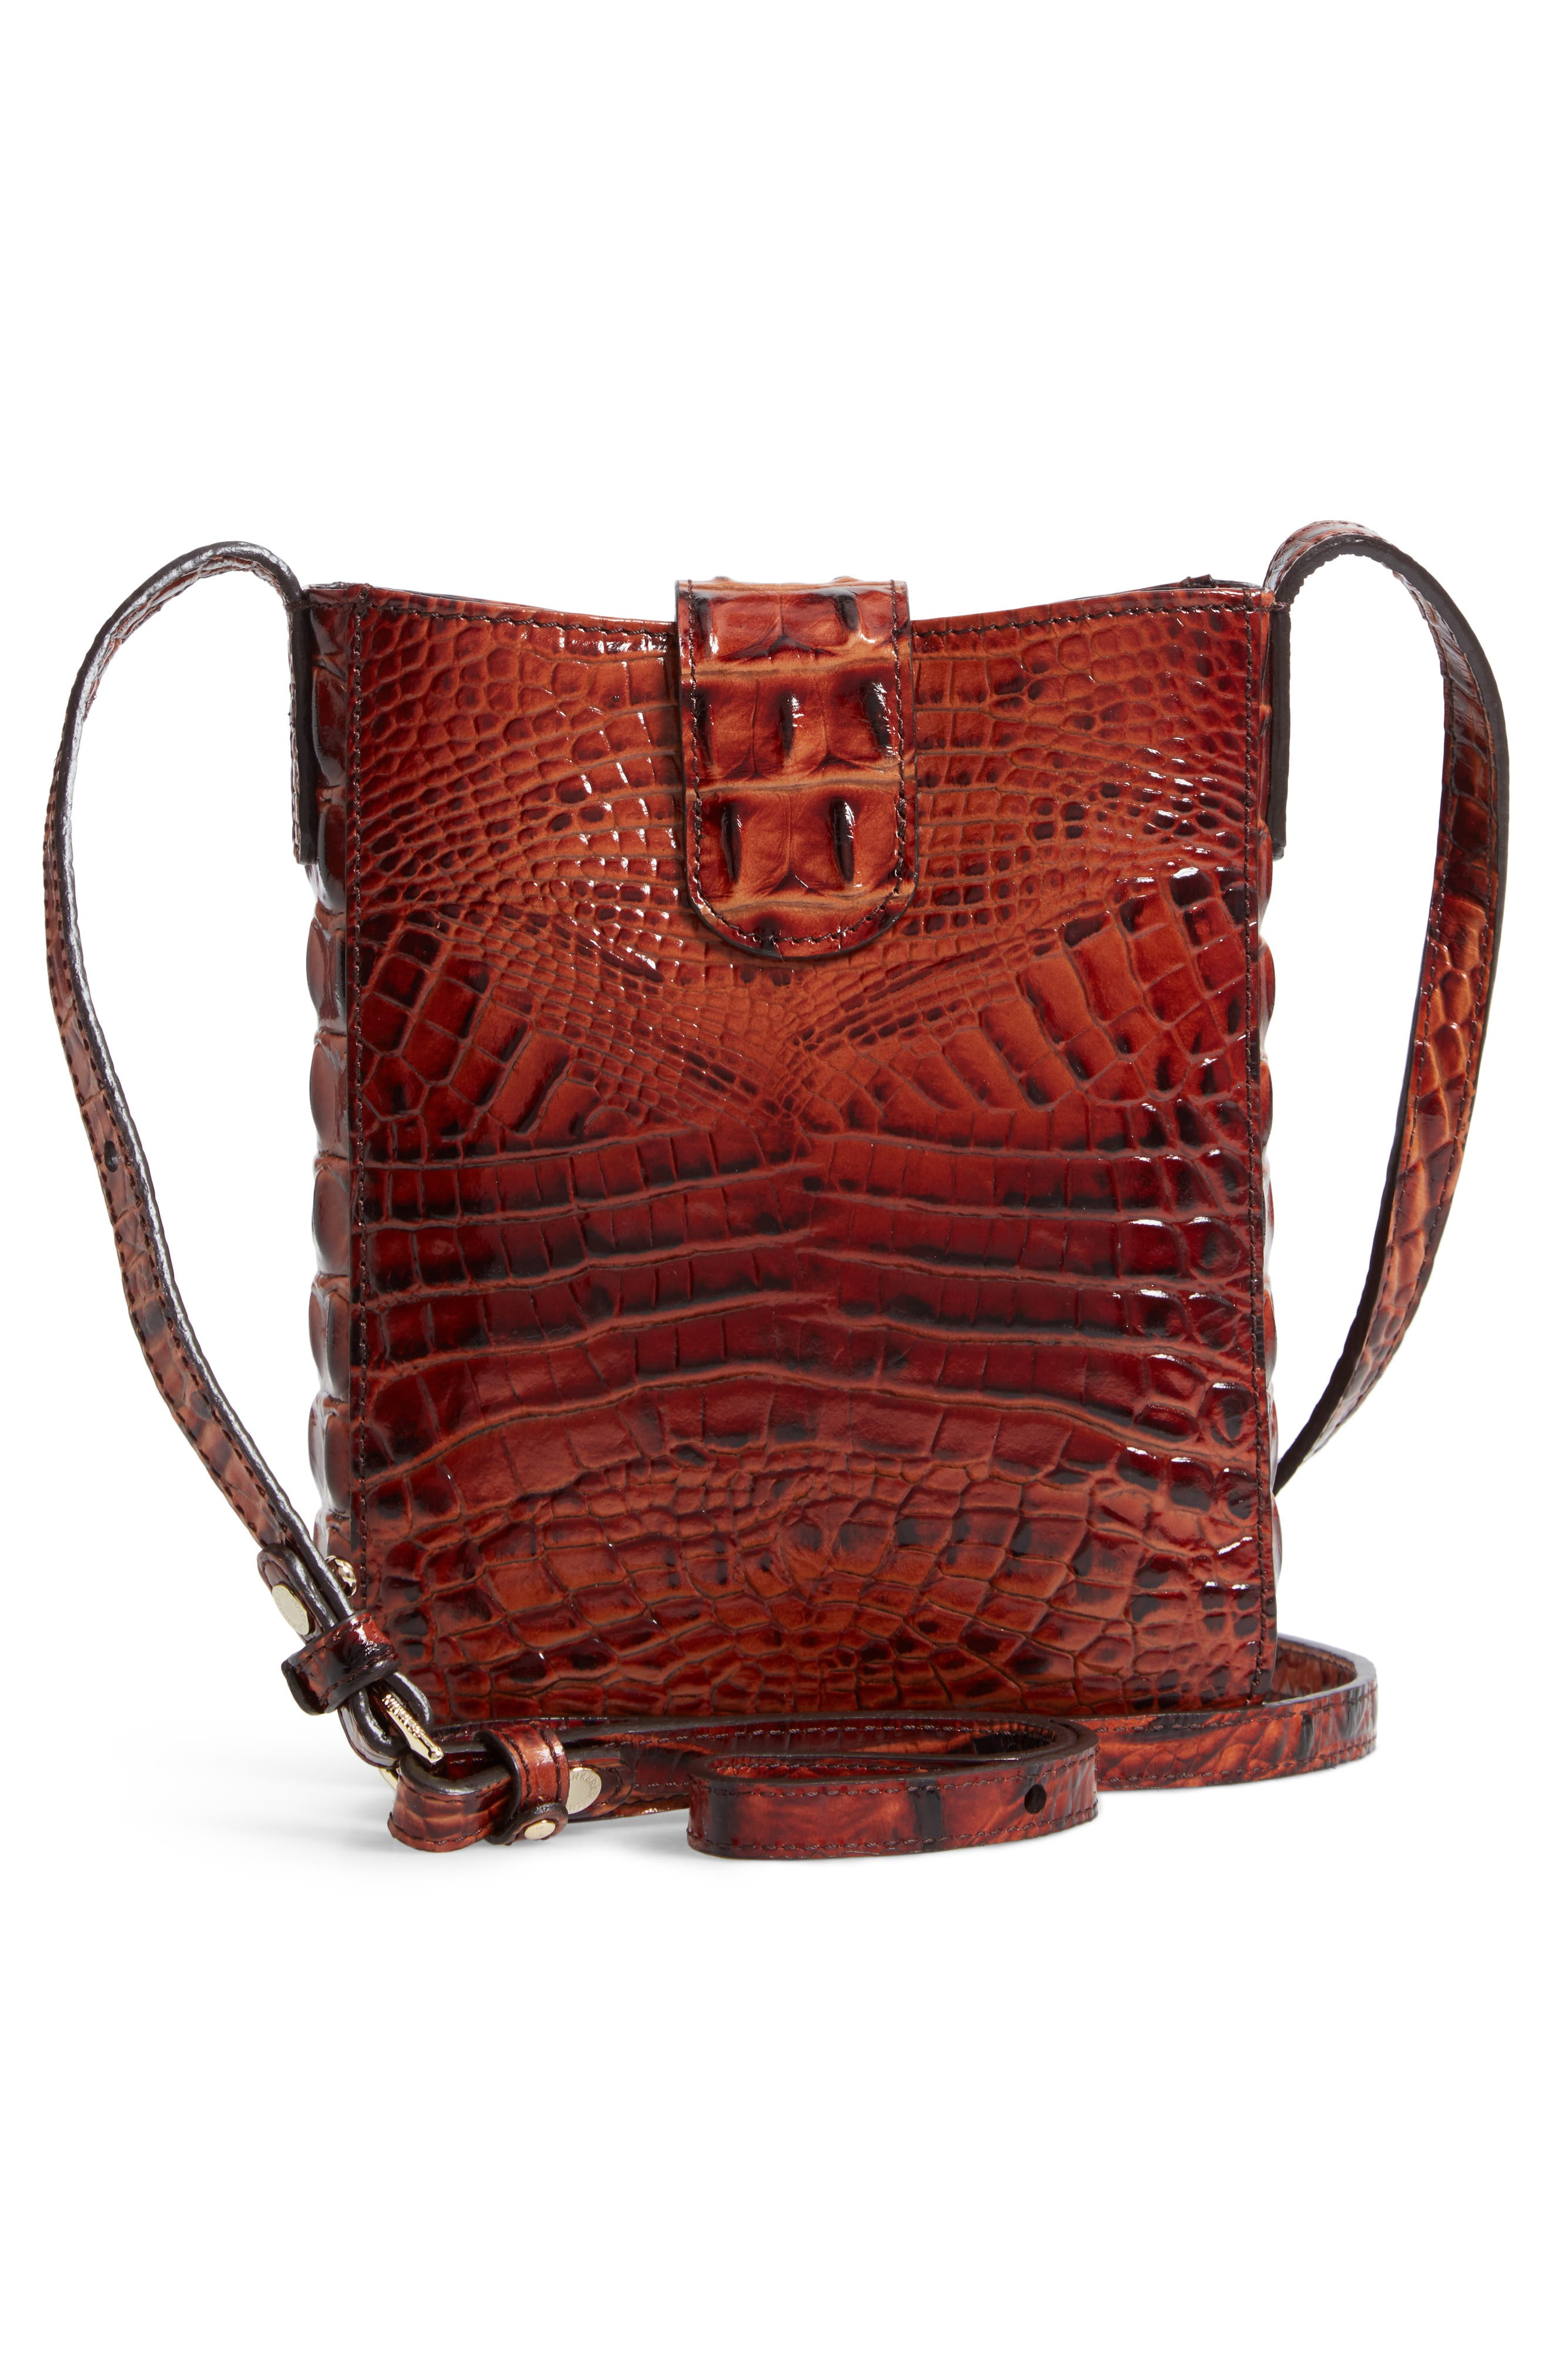 Marley Croc Embossed Leather Crossbody Bag,                             Alternate thumbnail 3, color,                             PECAN